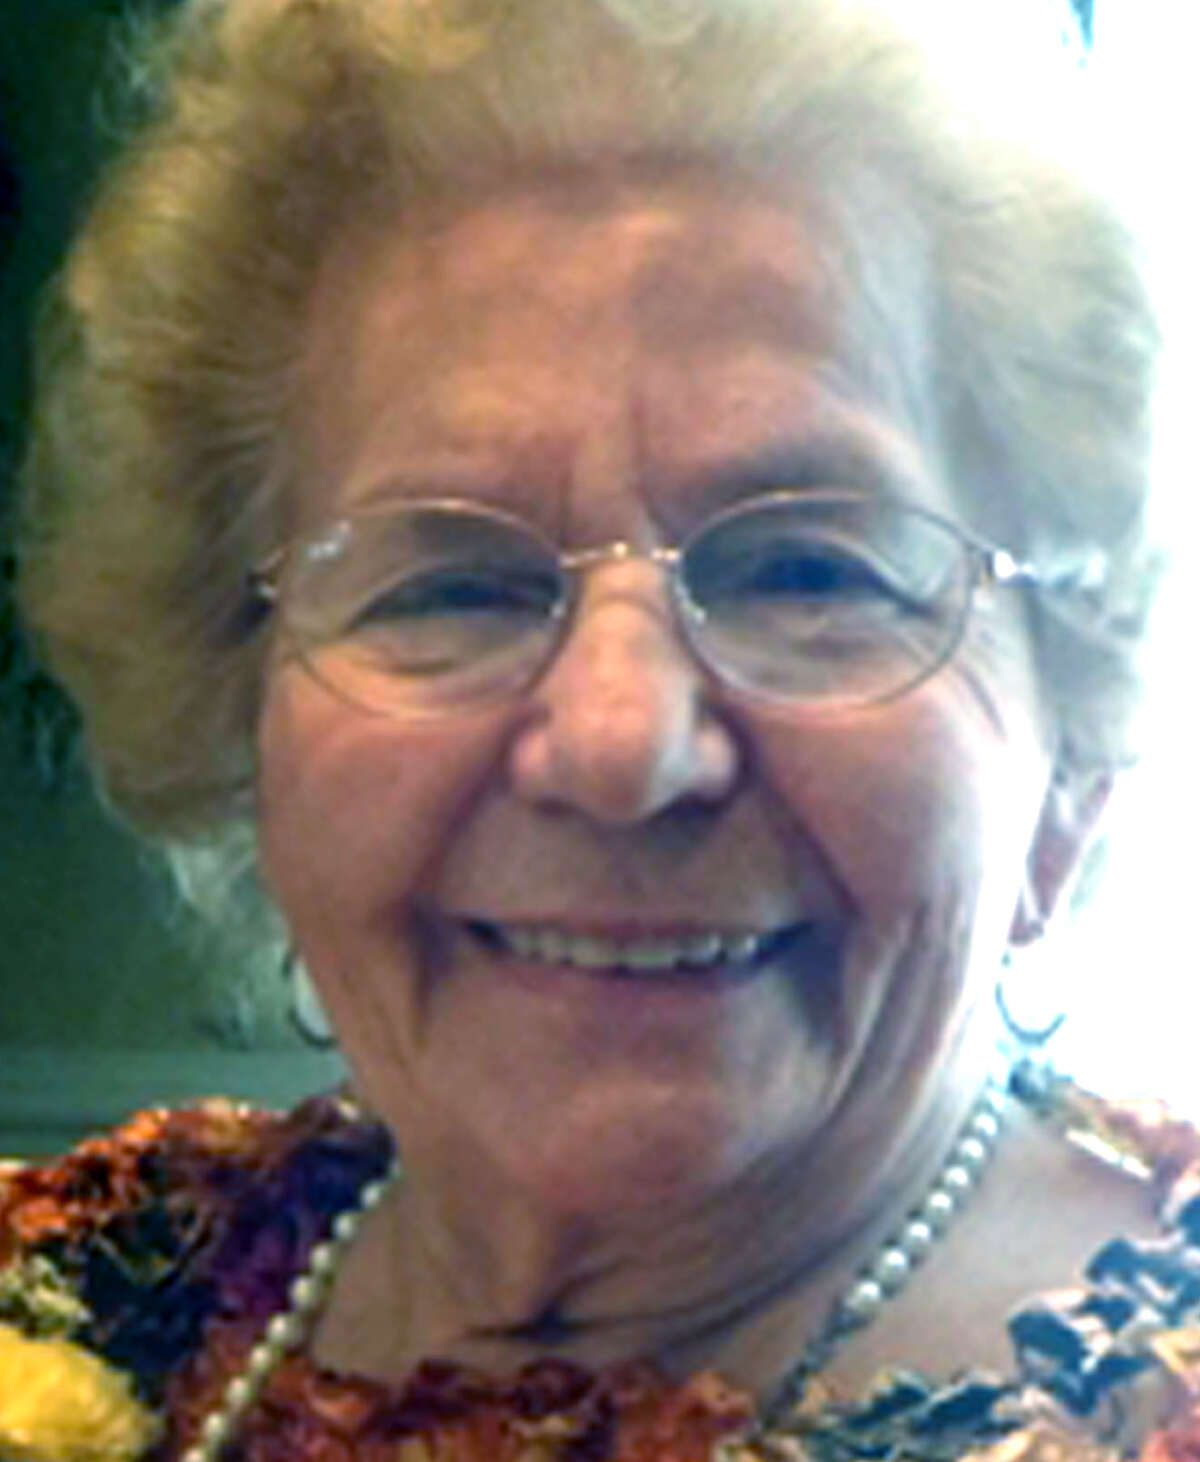 SPECTRUM/Hedy Hoffman, 91, of Palm Bay, Fl., died April 6, 2012. She was born to the late Hedwig and Joseph Stautner Feb. 18, 1921, in Bavaria, Germany.